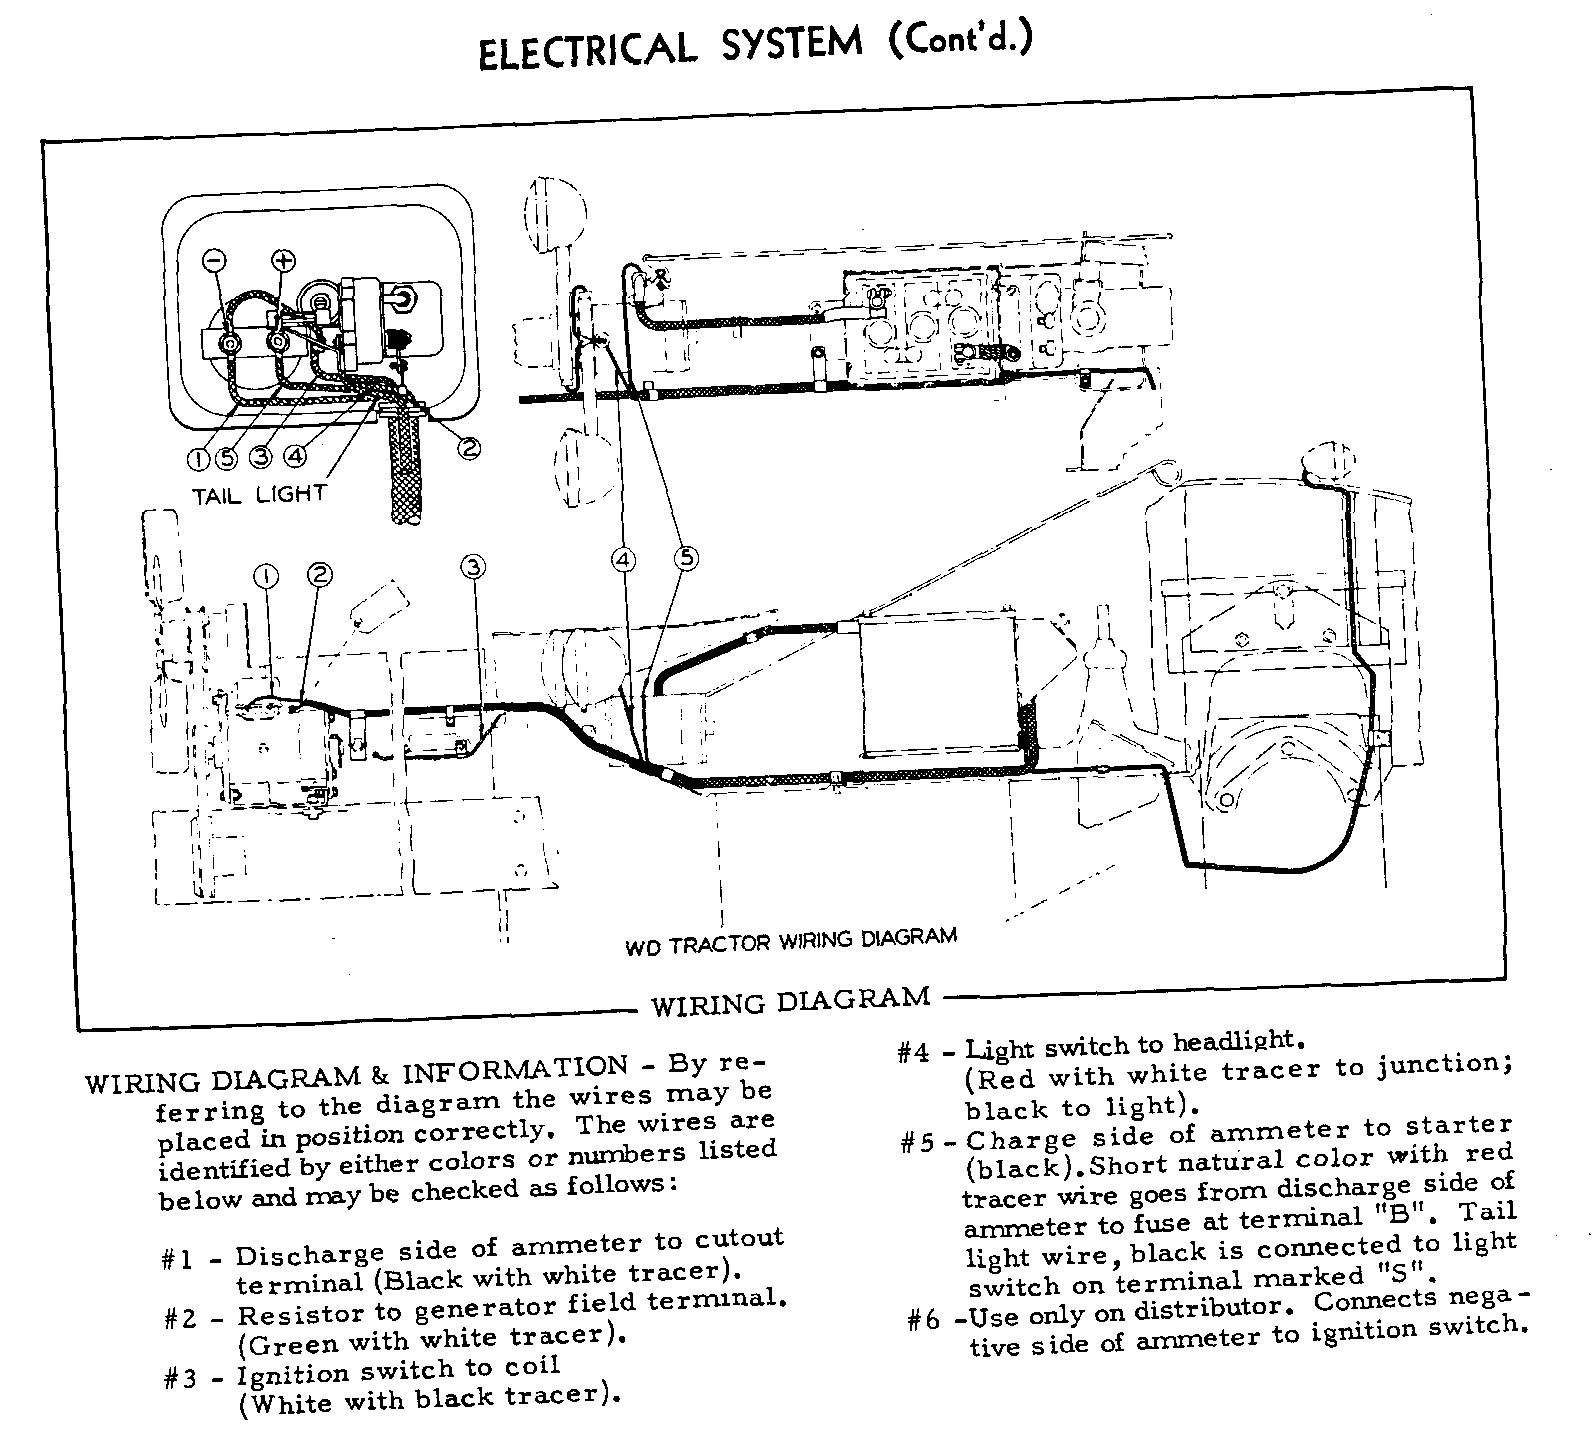 [DHAV_9290]  5915 Universal Ignition Switch Wiring Diagram | My Wiring DIagram | Wiring  Library | 20v Wiring Diagram |  | Wiring Library